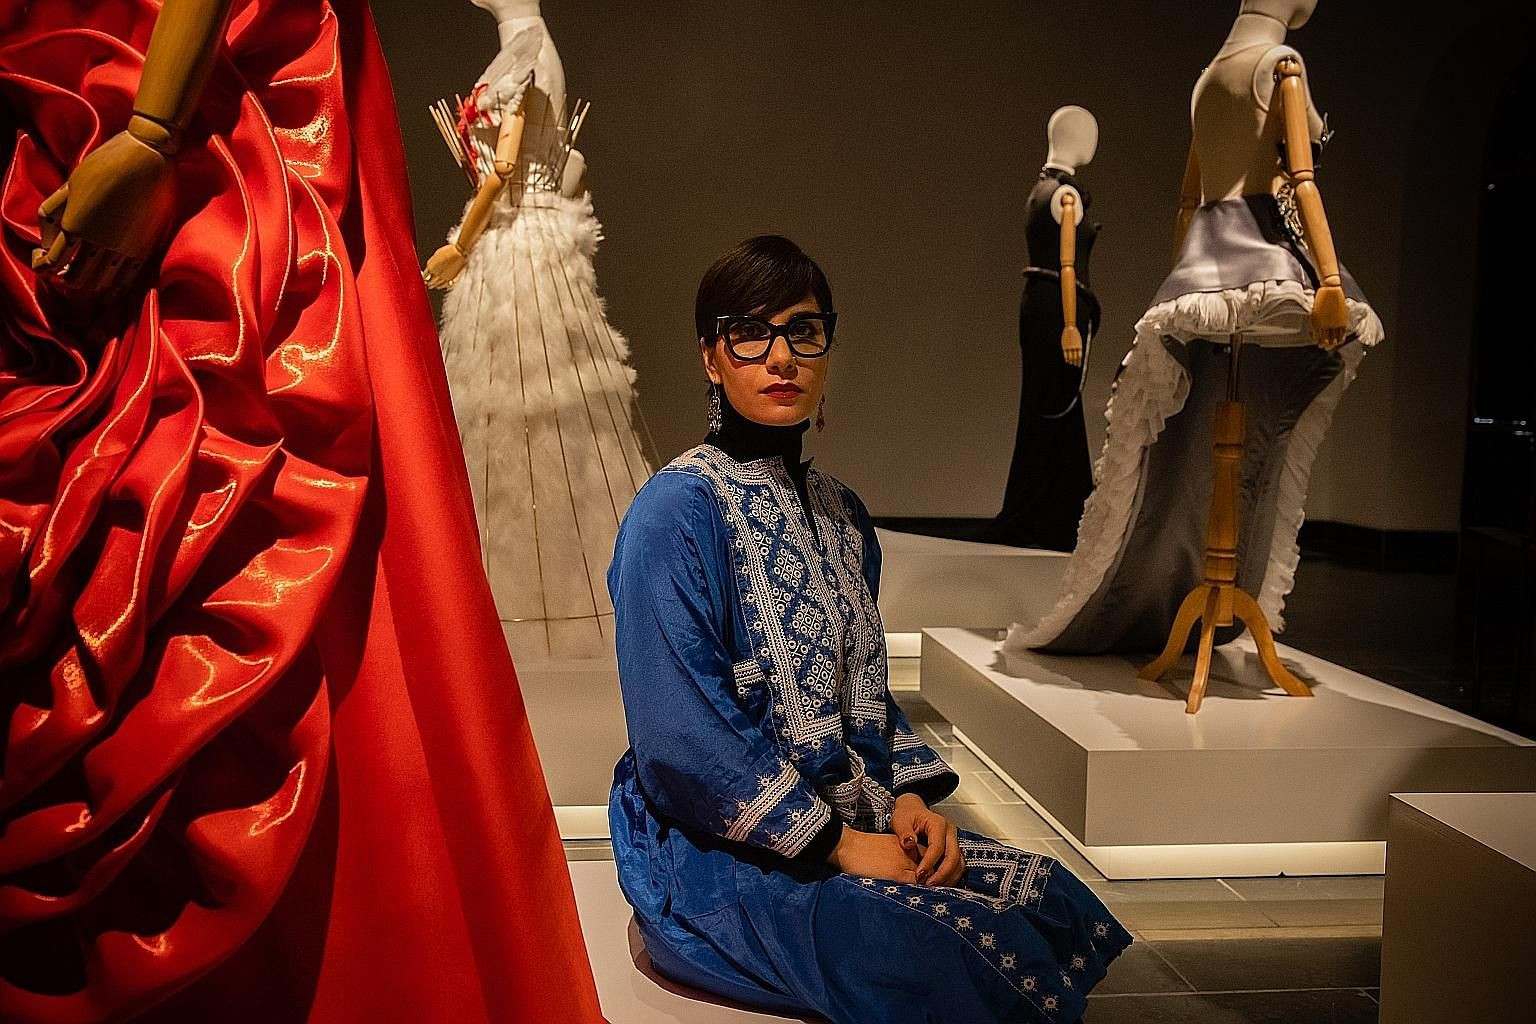 Photographer and artist Rada Akbar says her exhibition in Kabul explores female trailblazers during a fearful time for Afghan women. Each of the displays in the Superwomen show tells the story of a pioneer. PHOTO: NYTIMES